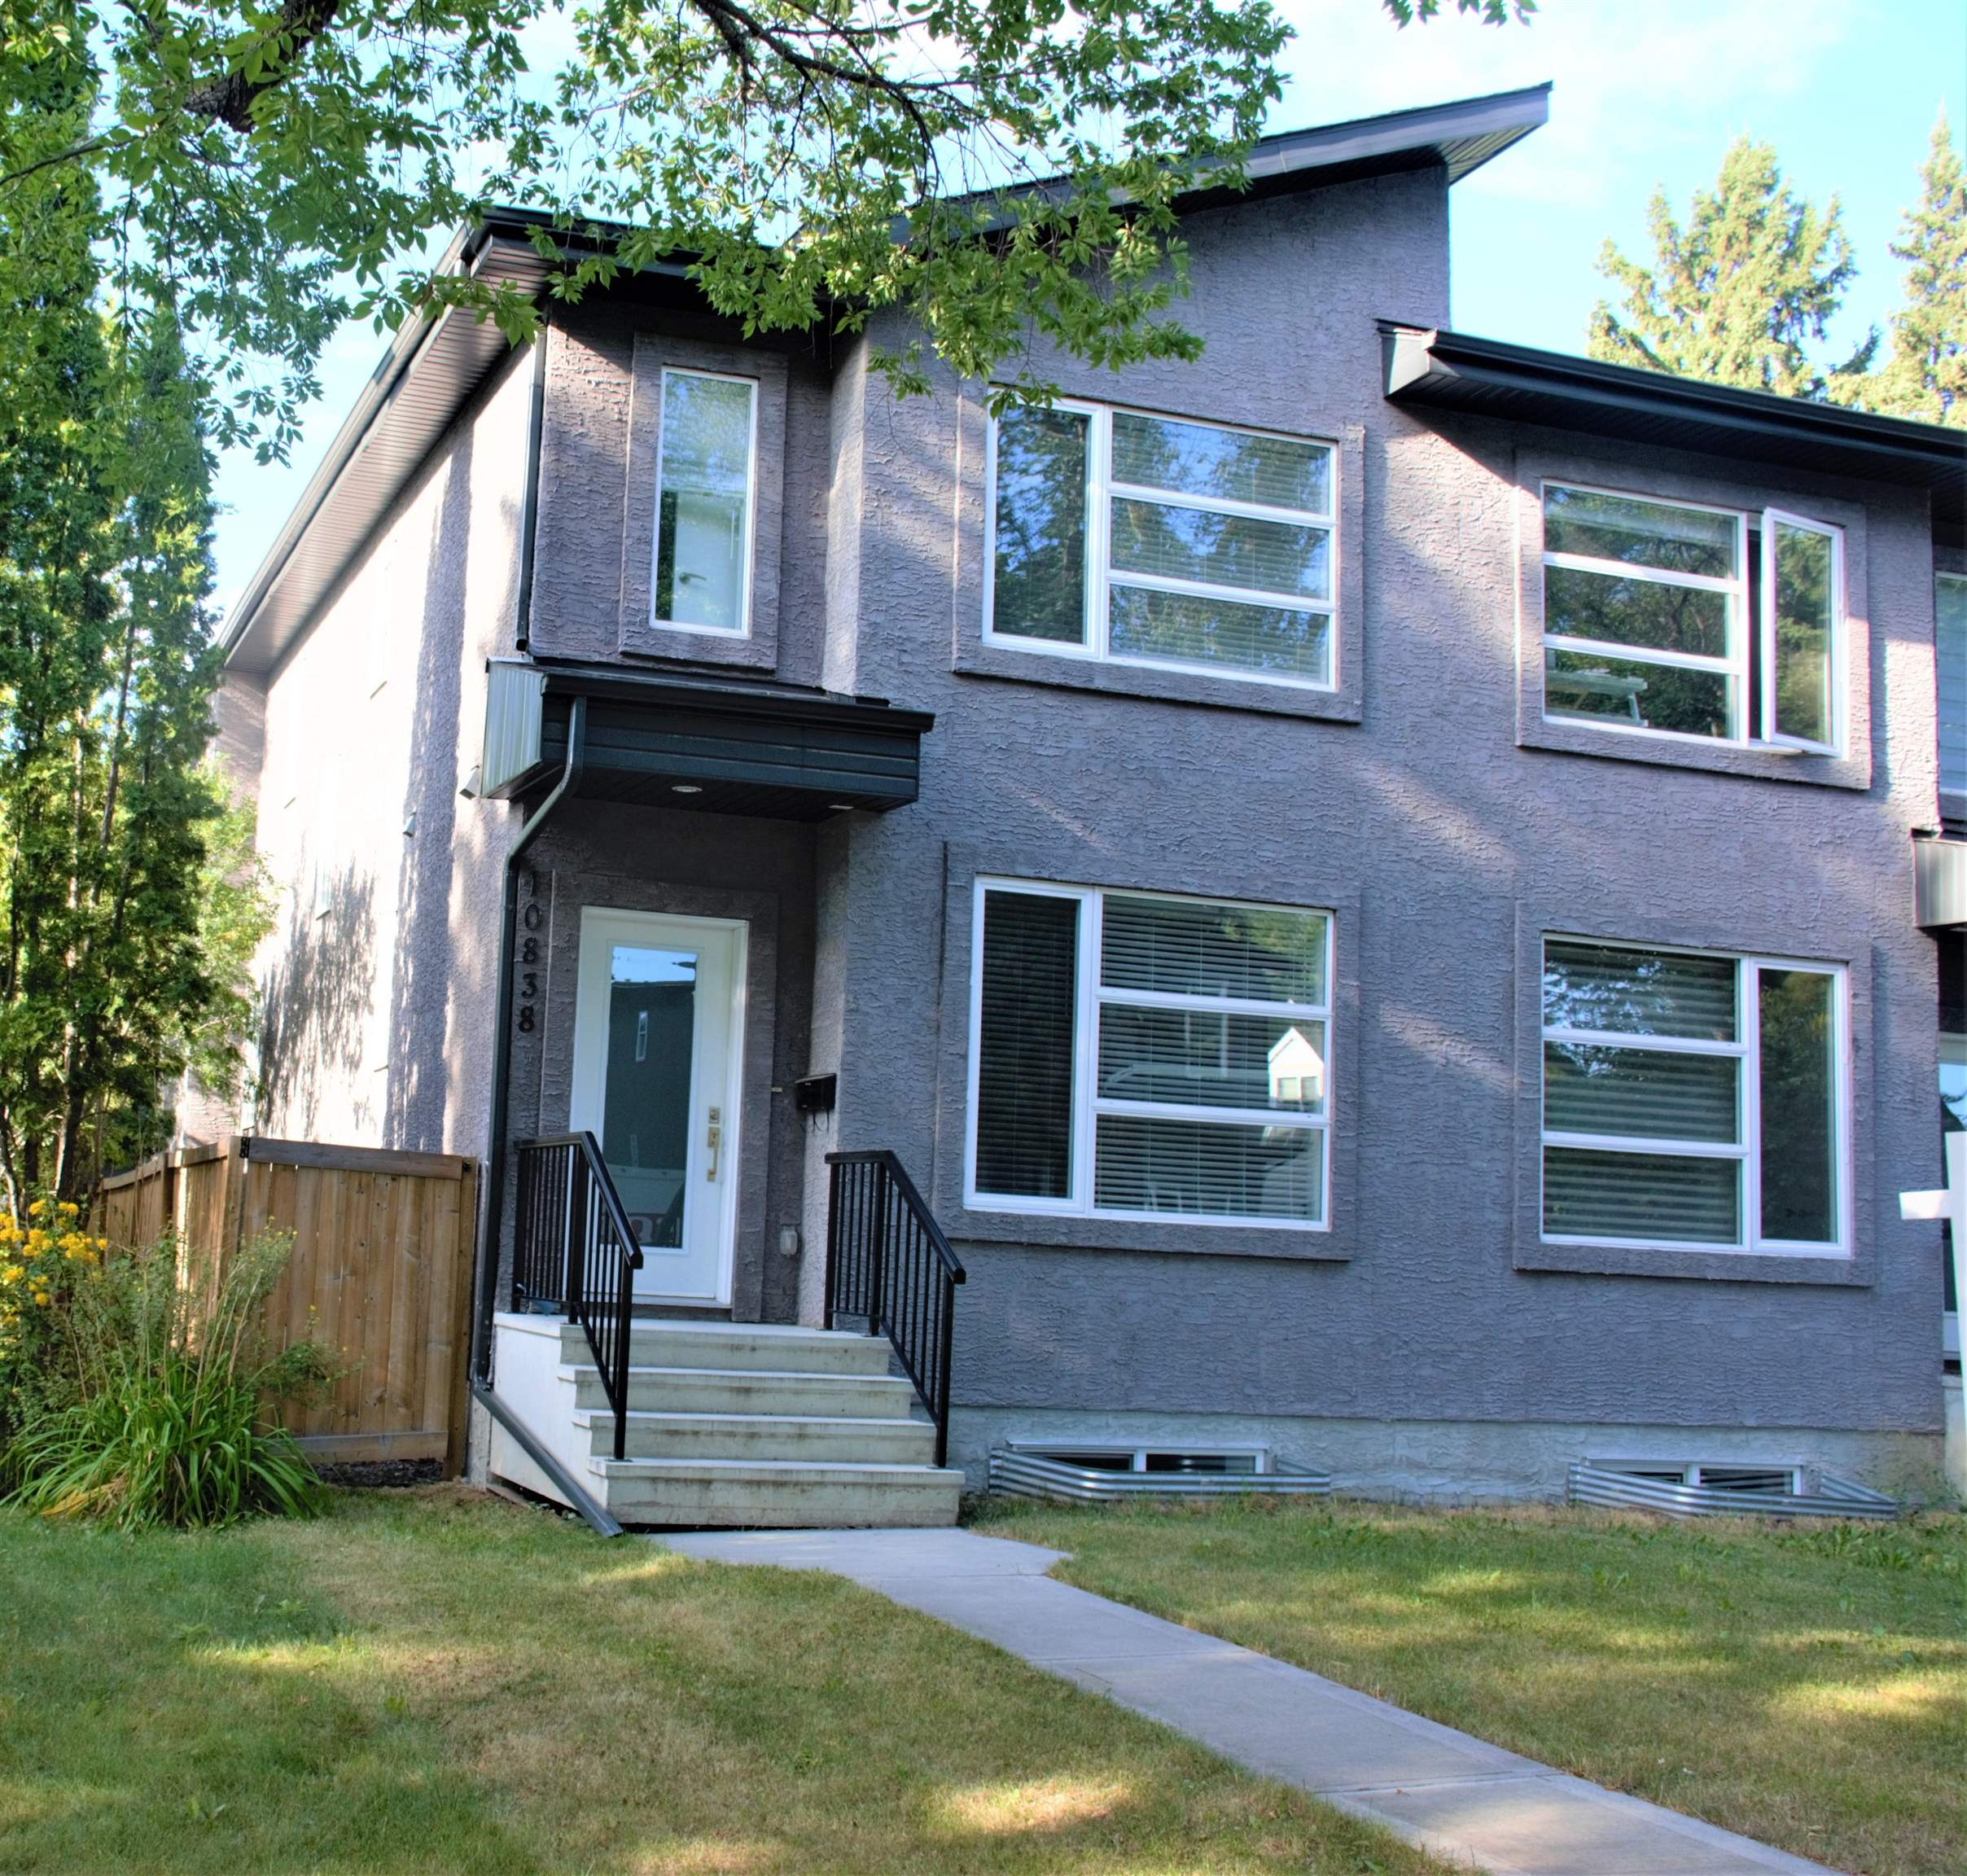 Welcome to this half duplex in ALLENDALE! Enjoy everything this mature neighborhood has to offer while living in your half duplex. This property has been completed with hardwood flooring on the main floor with 9 ft ceiling comes with a fireplace, designated dining area, with stylish lighting, pantry & half bath. Upper floor features 3 bedrooms with the Master boasting a 4 pc. en suite; spacious main bath and gorgeous exterior stucco finish. Comes with stainless steel kitchen appliances. Fully finished basement has separate entrance good size bed room large living room full bath and kitchen. To complete this package there will be a double detached garage provided with fence AND landscaping front and back! All of this in an established community & close to downtown and a short drive to the U of A.